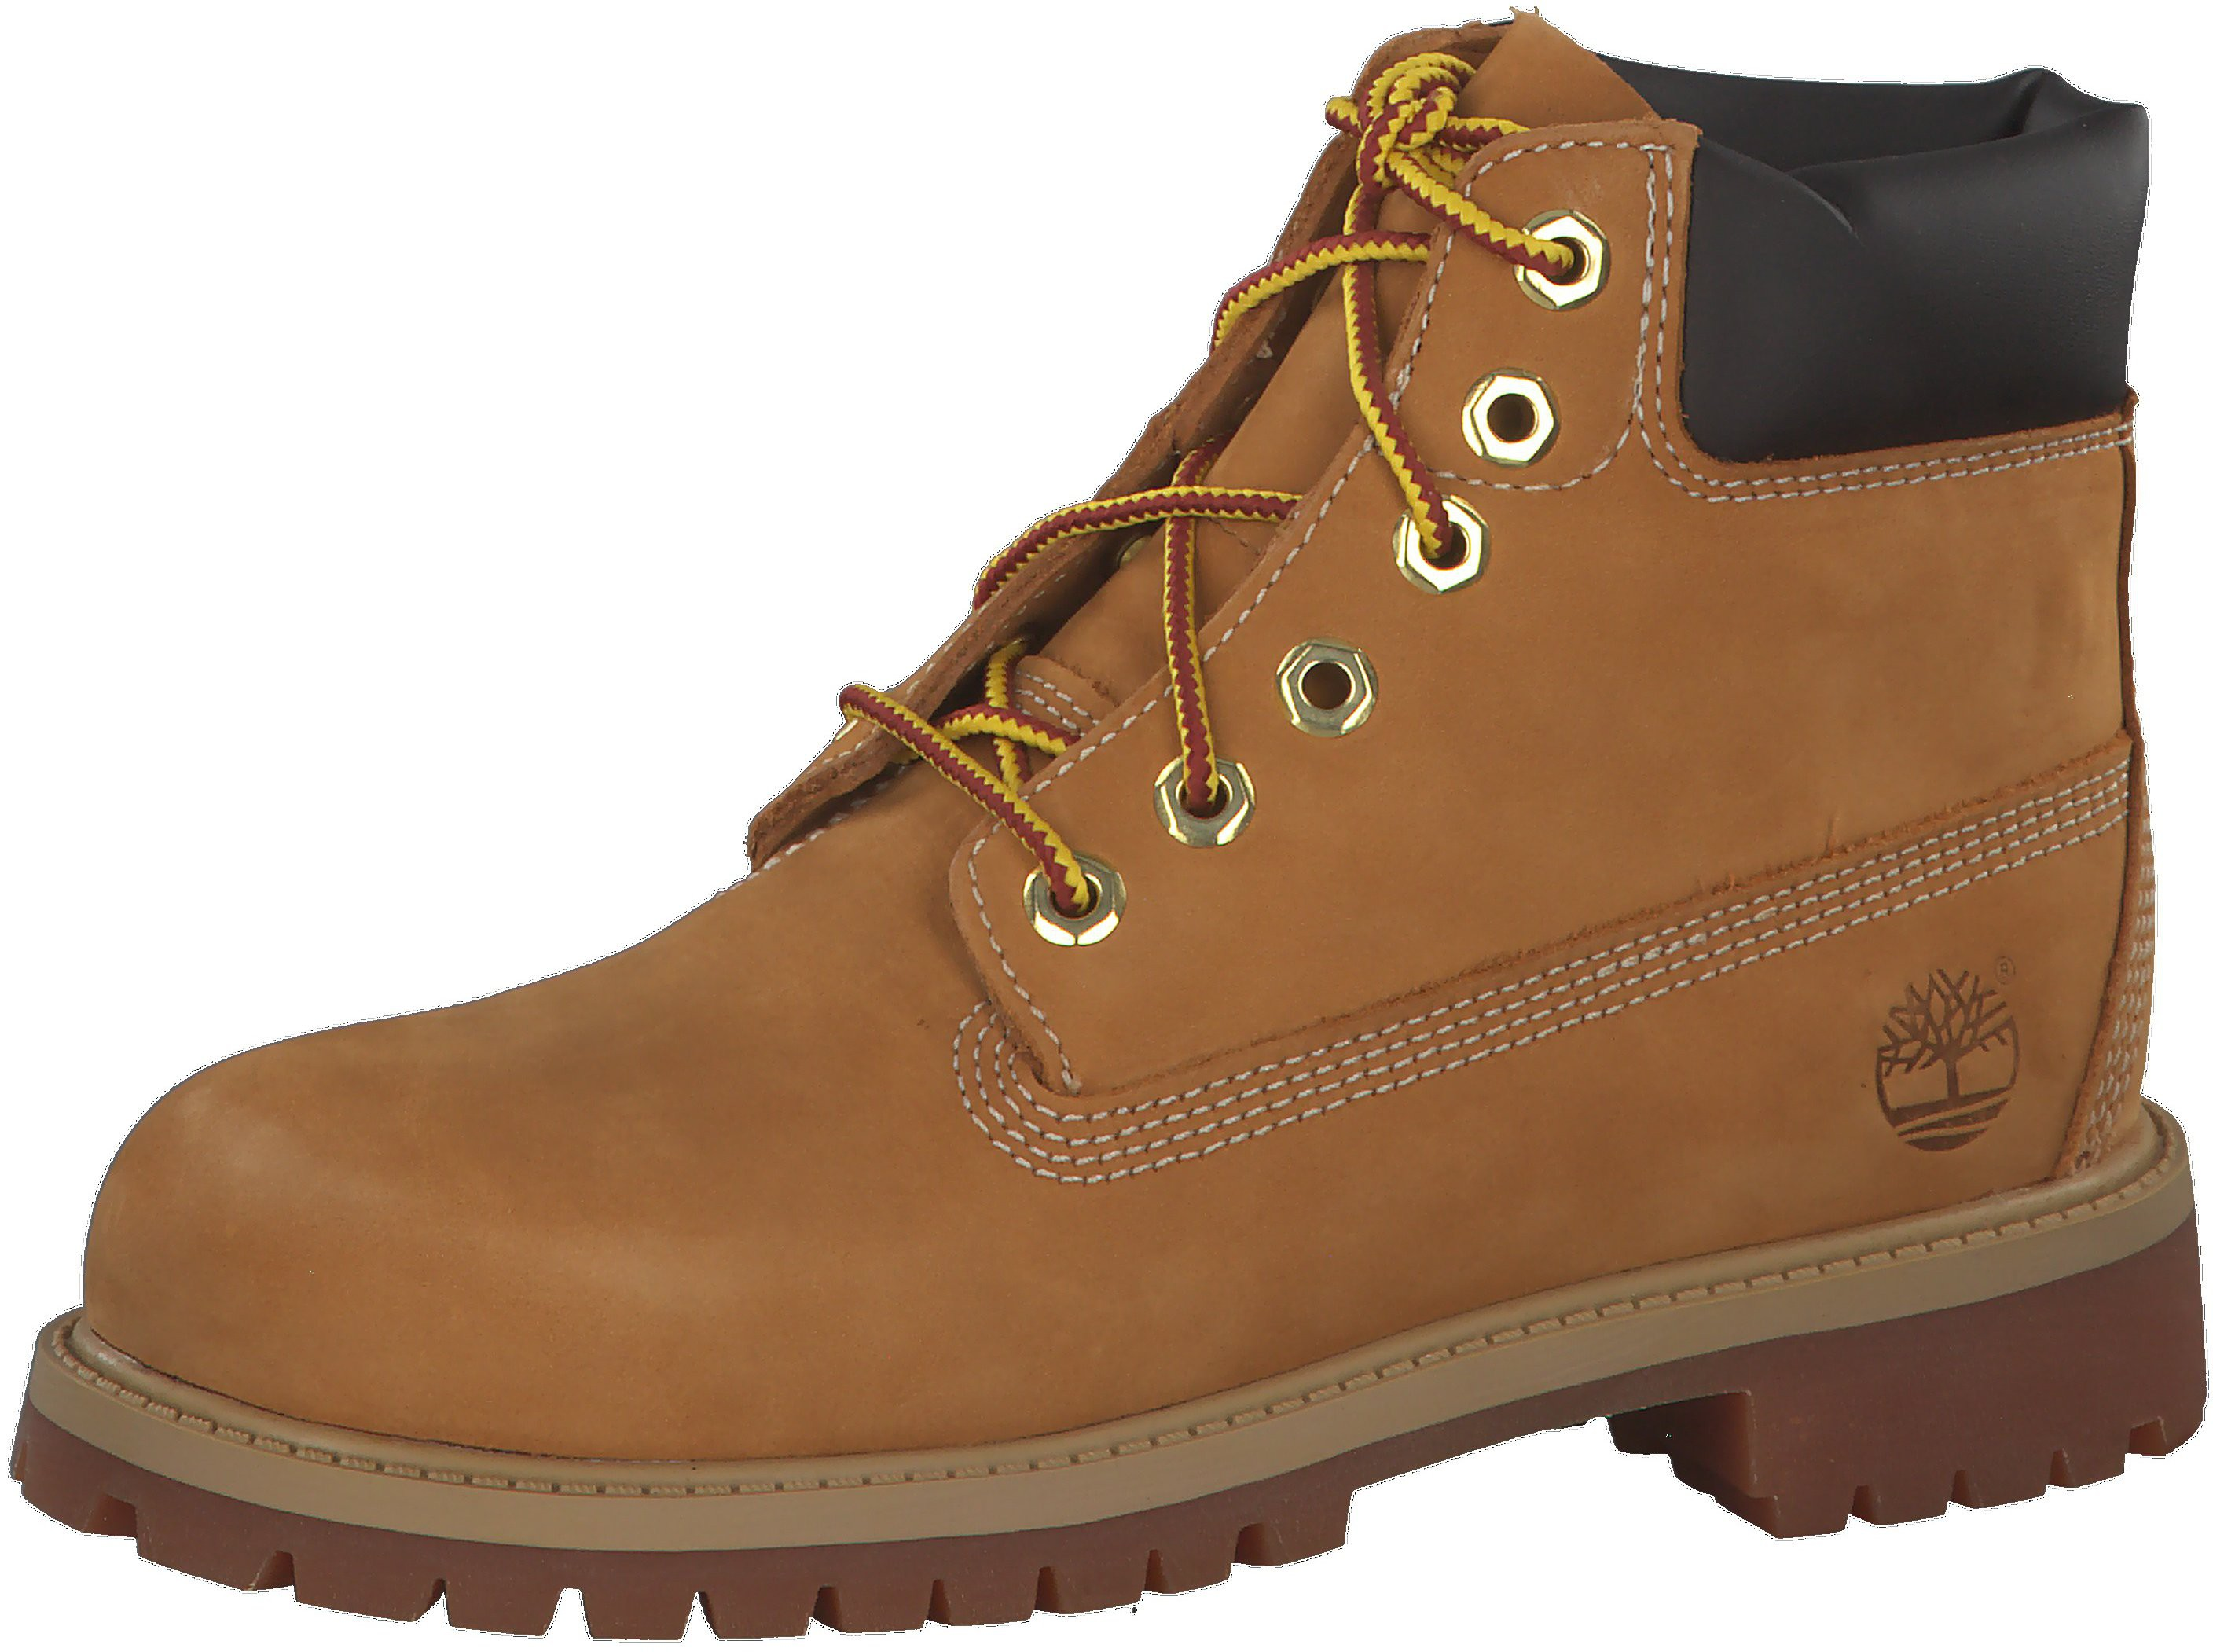 Timberland Waterproof 6 Inch Boot Junior 12709 günstig kaufen